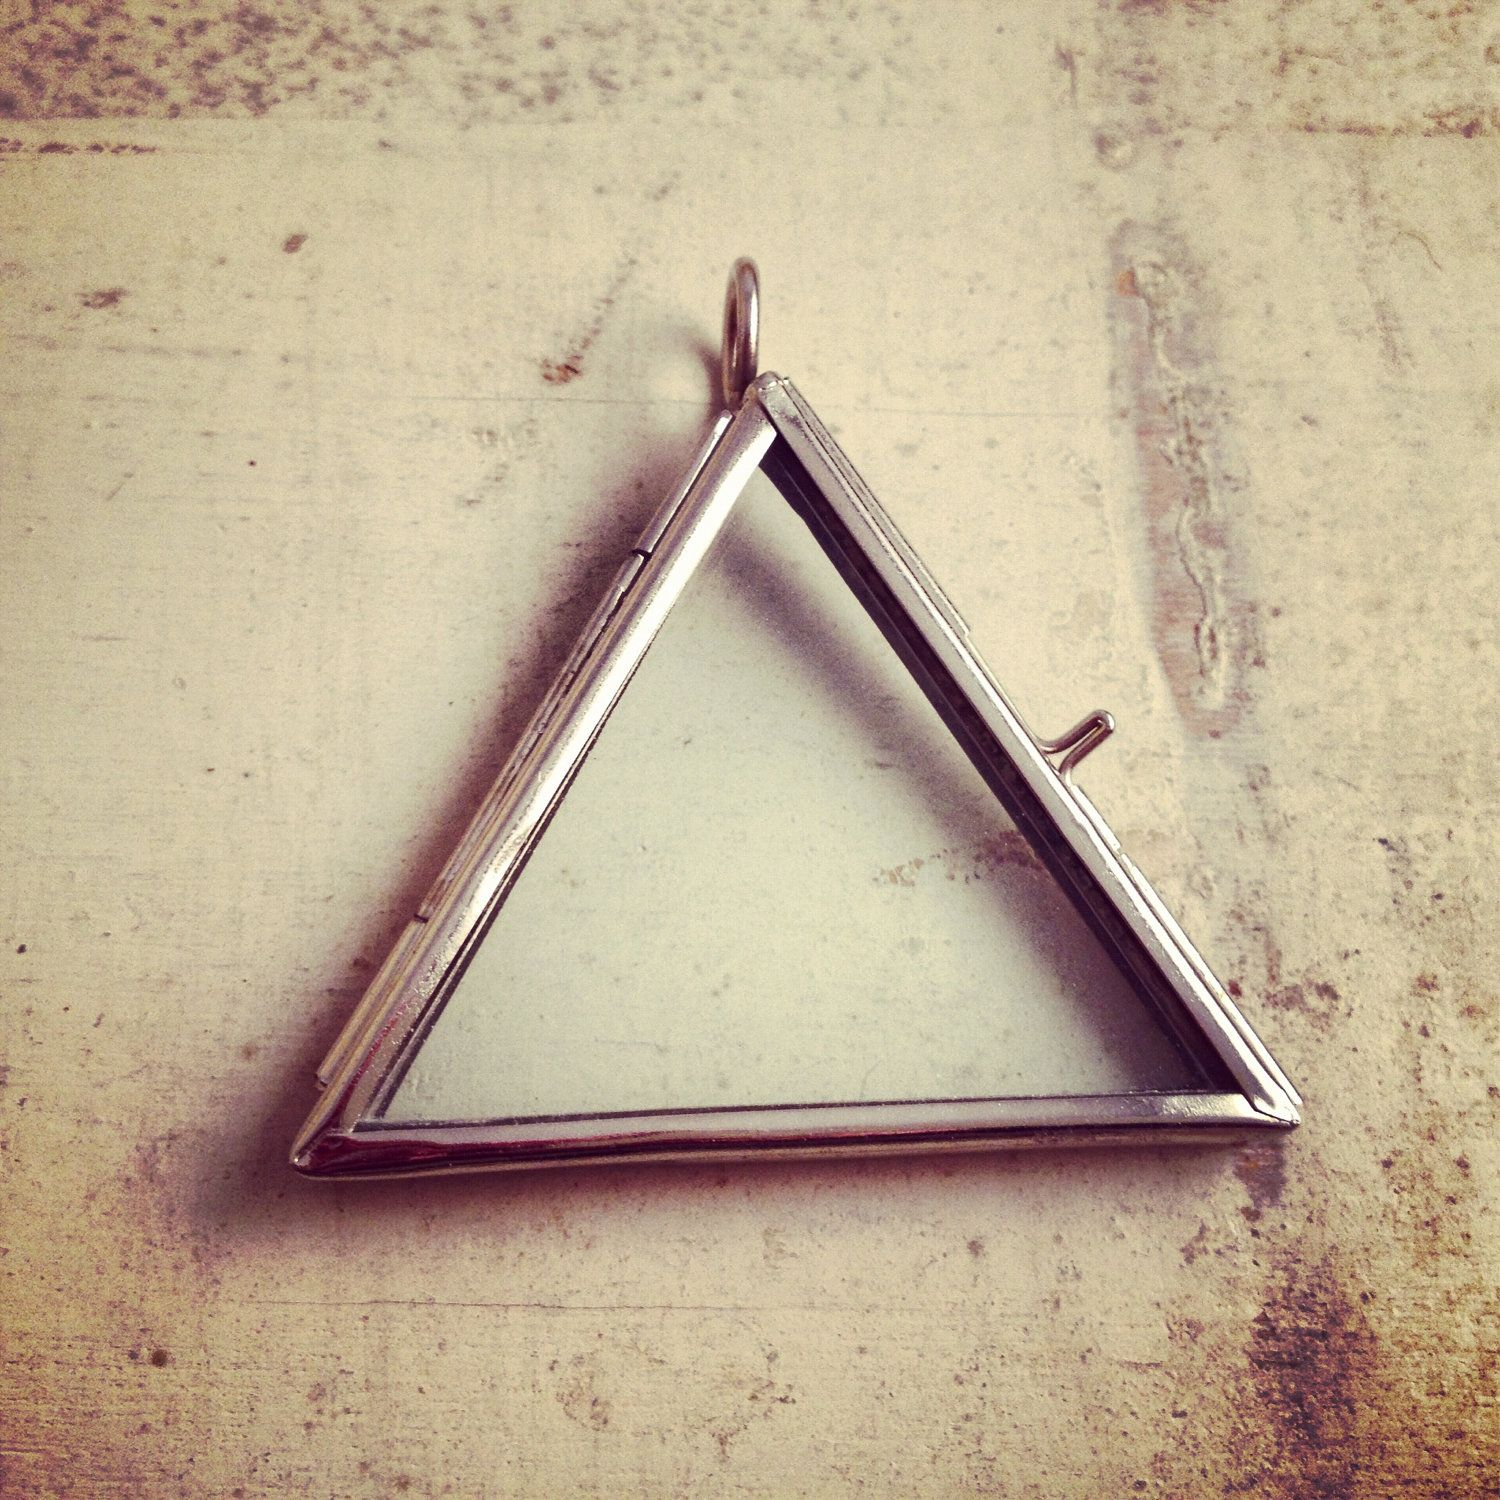 Silver glass frame pendant triangle shape double sided glass double sided glass triangle frame pendant hinged locket charm frame silver vintage style jewelry supplies aloadofball Gallery